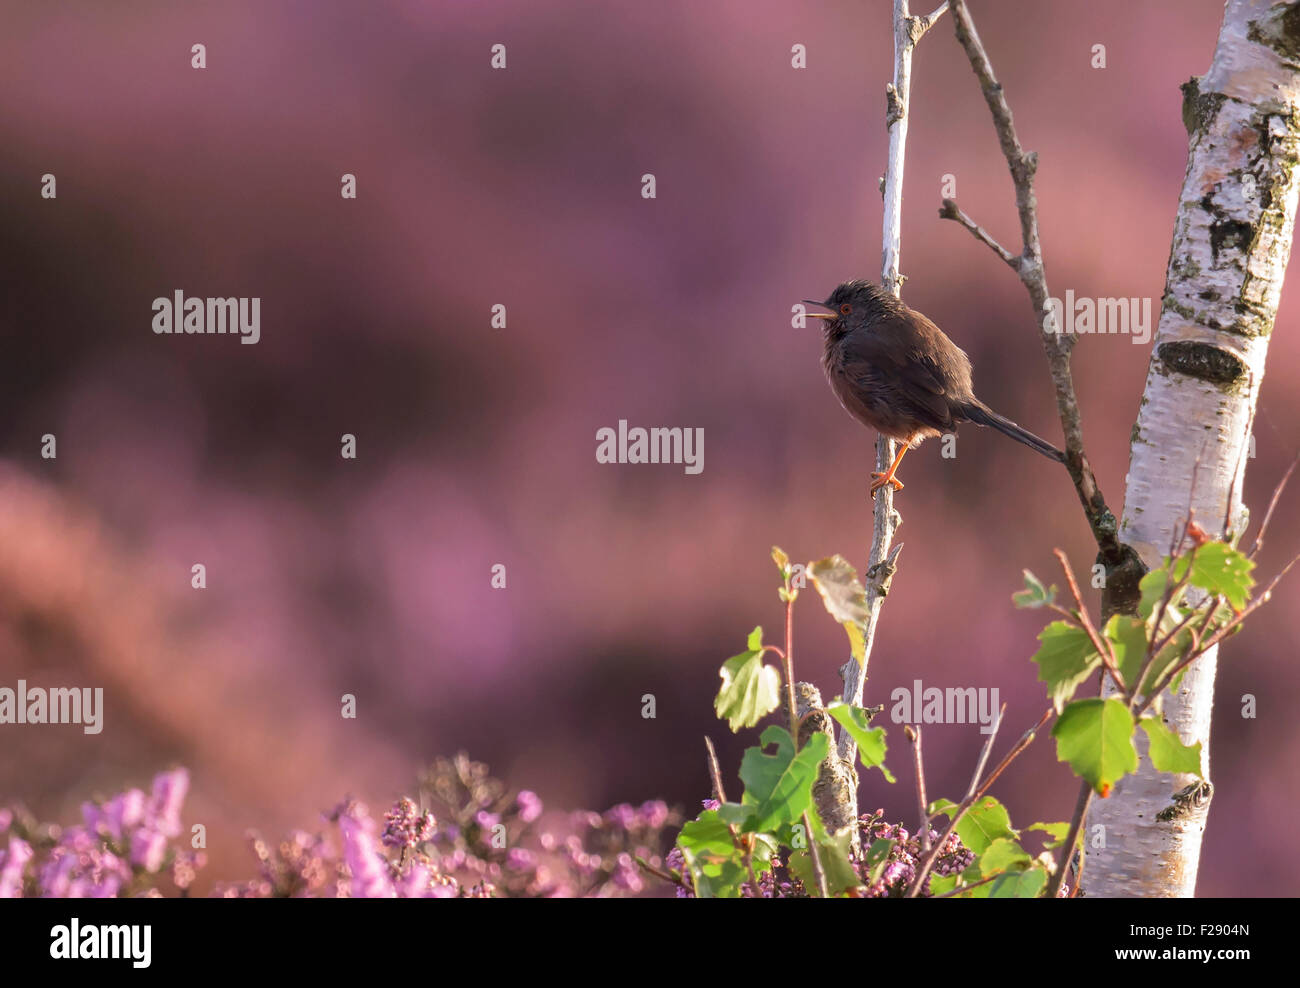 Male Dartford Warbler (Sylvia undata) perched on branch of silver birch tree - Stock Image